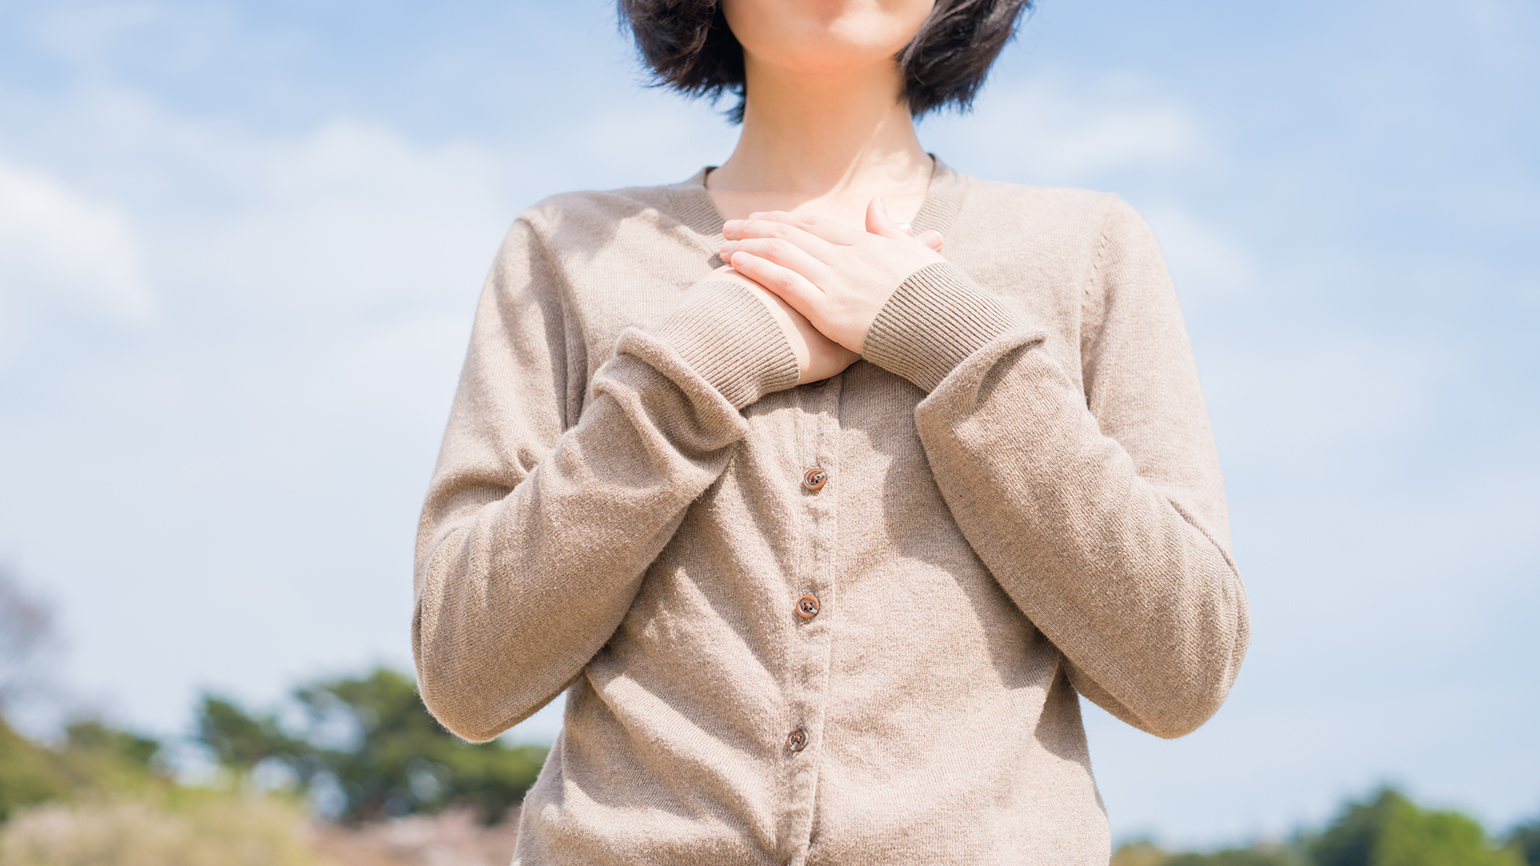 A woman, hands crossed over her heart, expresses gratitude